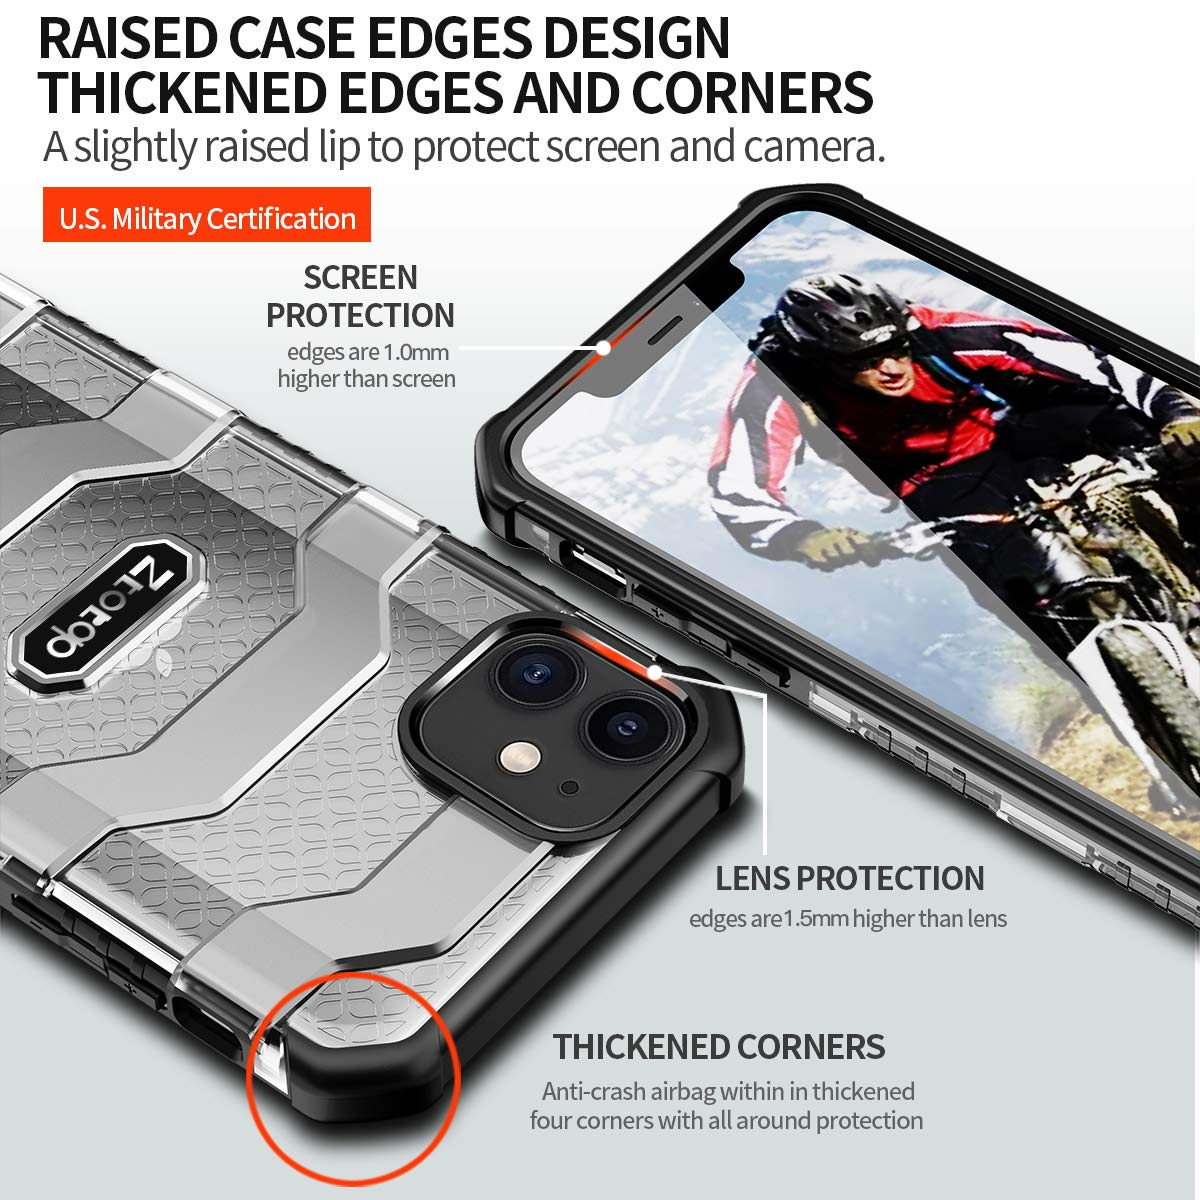 Armor Protector for iPhone, Matte Hard Translucent PC Back Cover with Flexible TPU Frame, Shockproof Cover Case